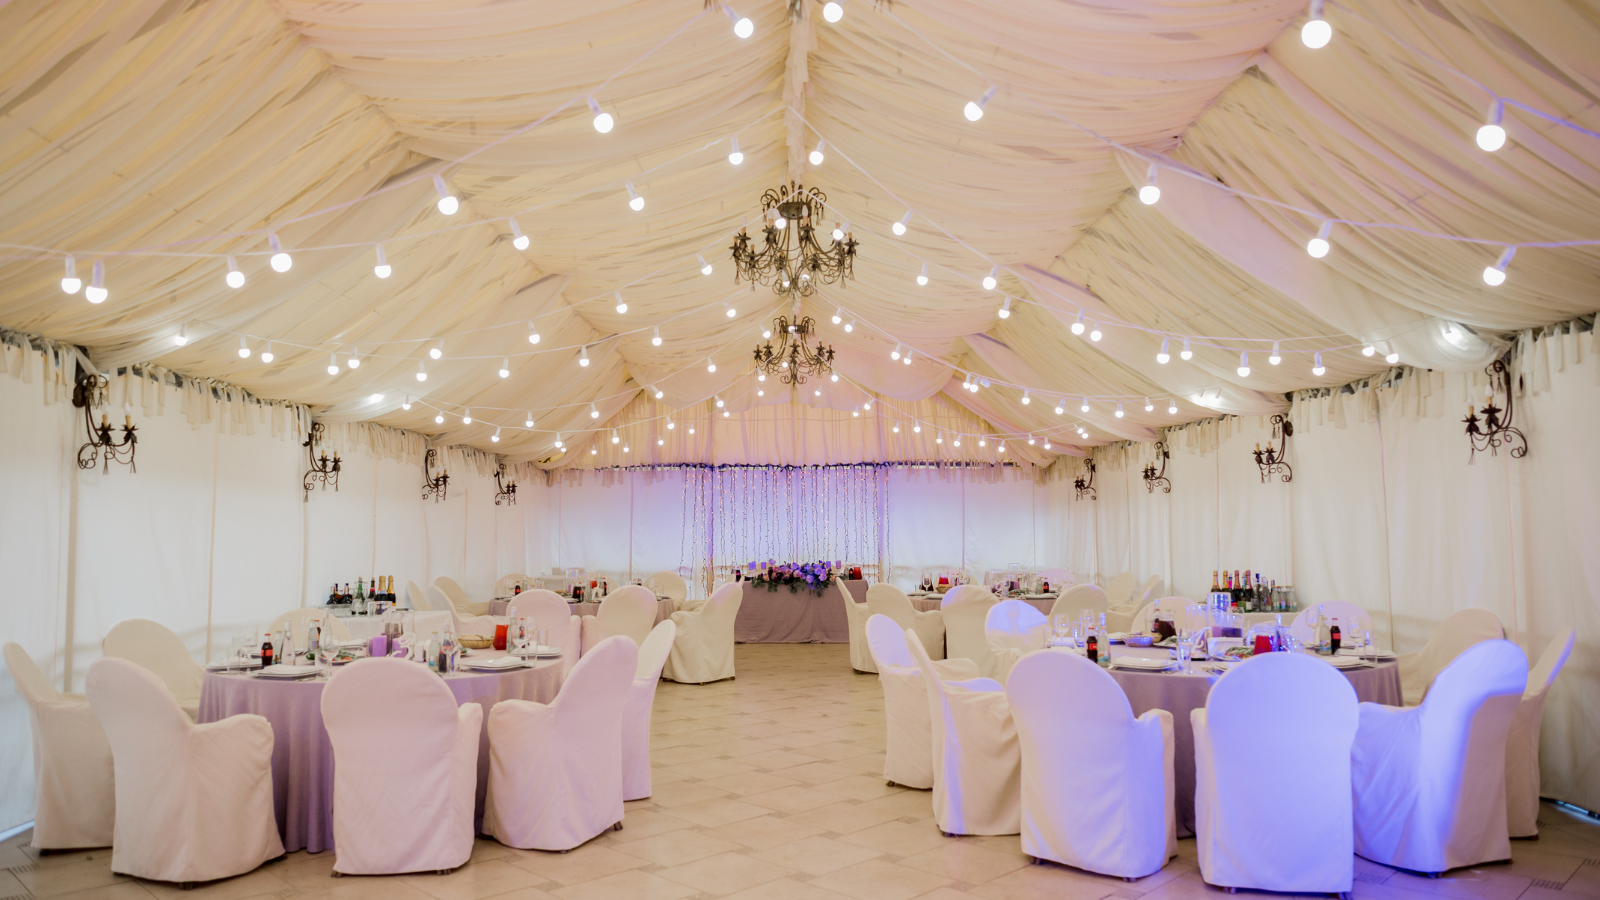 string lights and assorted seating in tent for reception